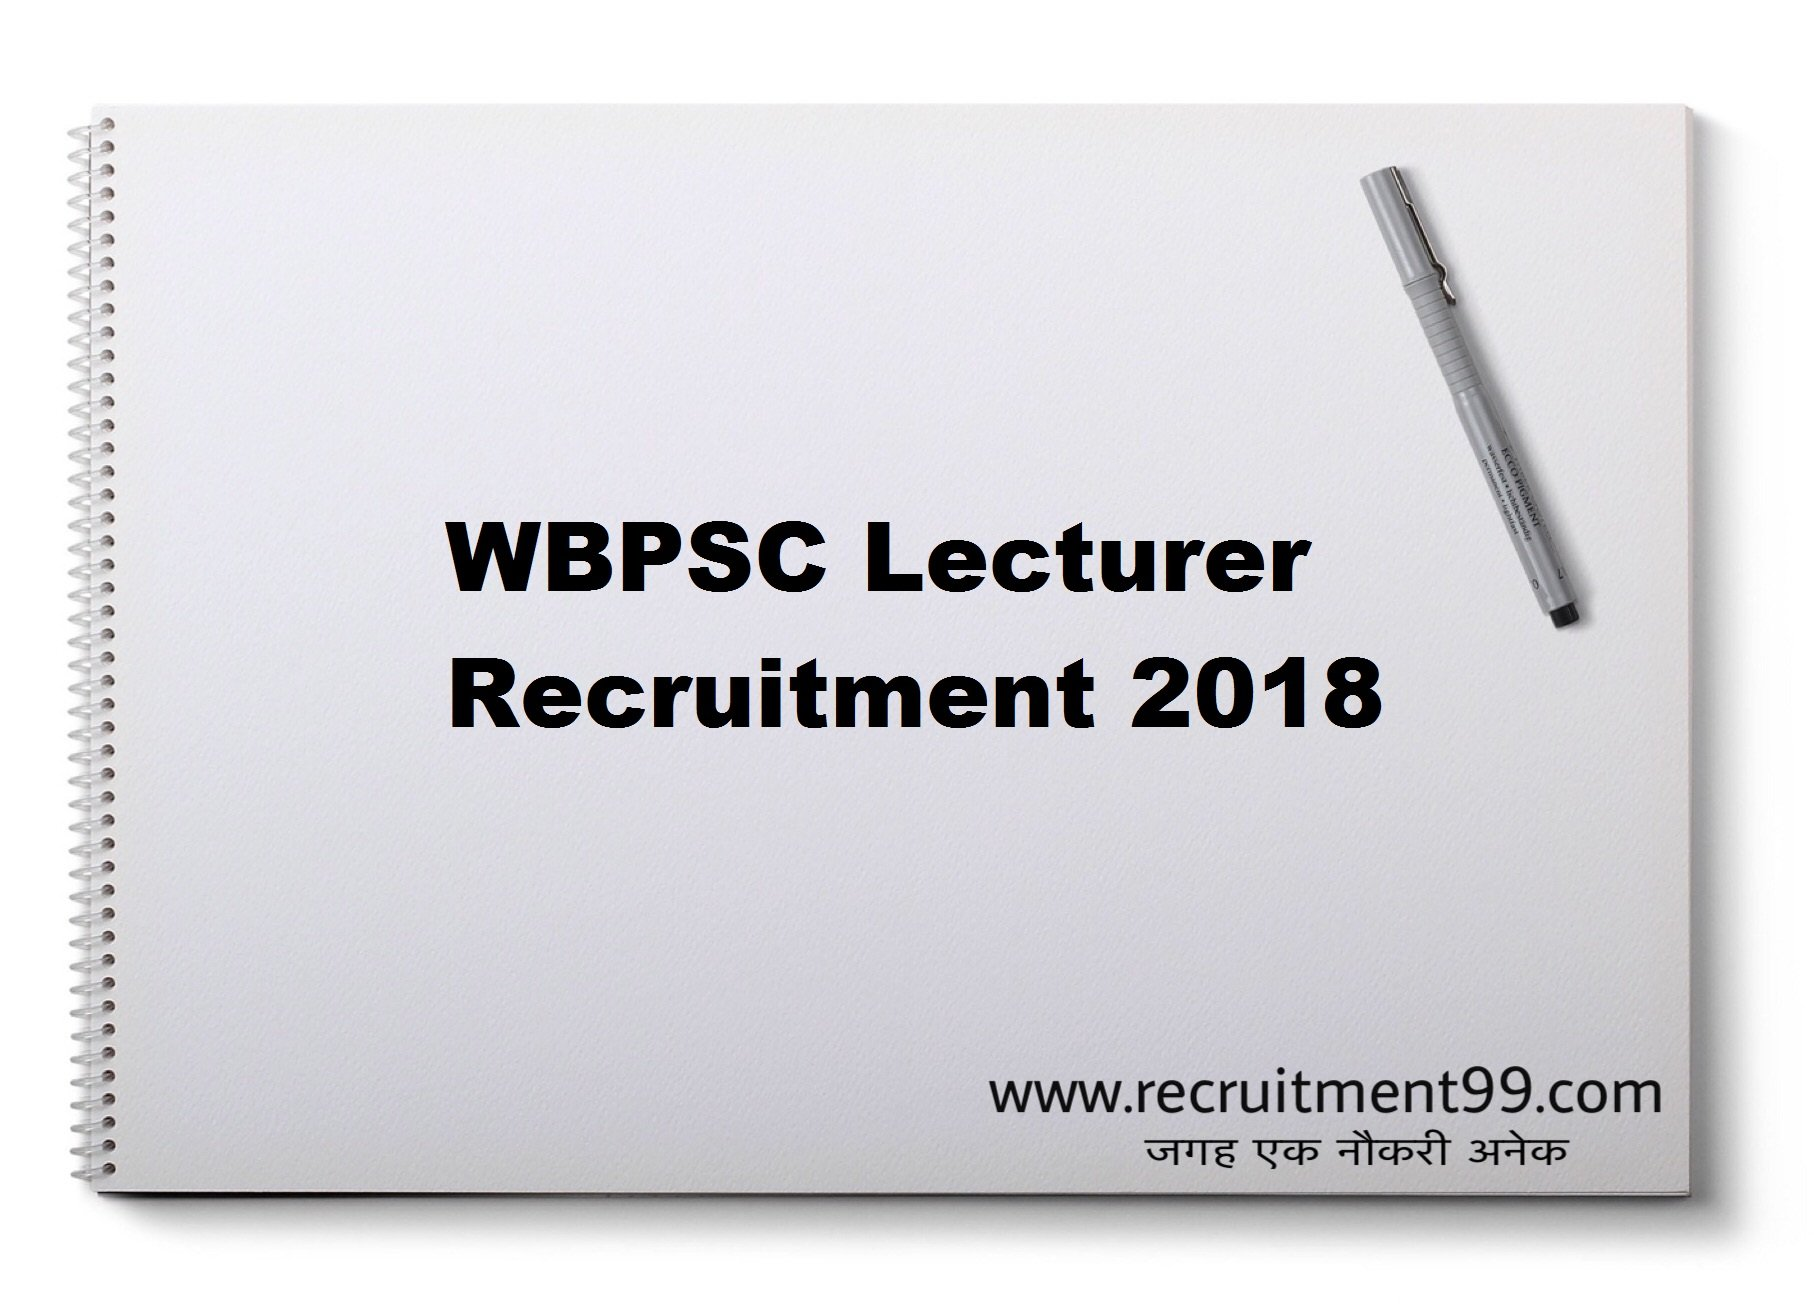 WBPSC Lecturer Recruitment Admit Card Result 2018